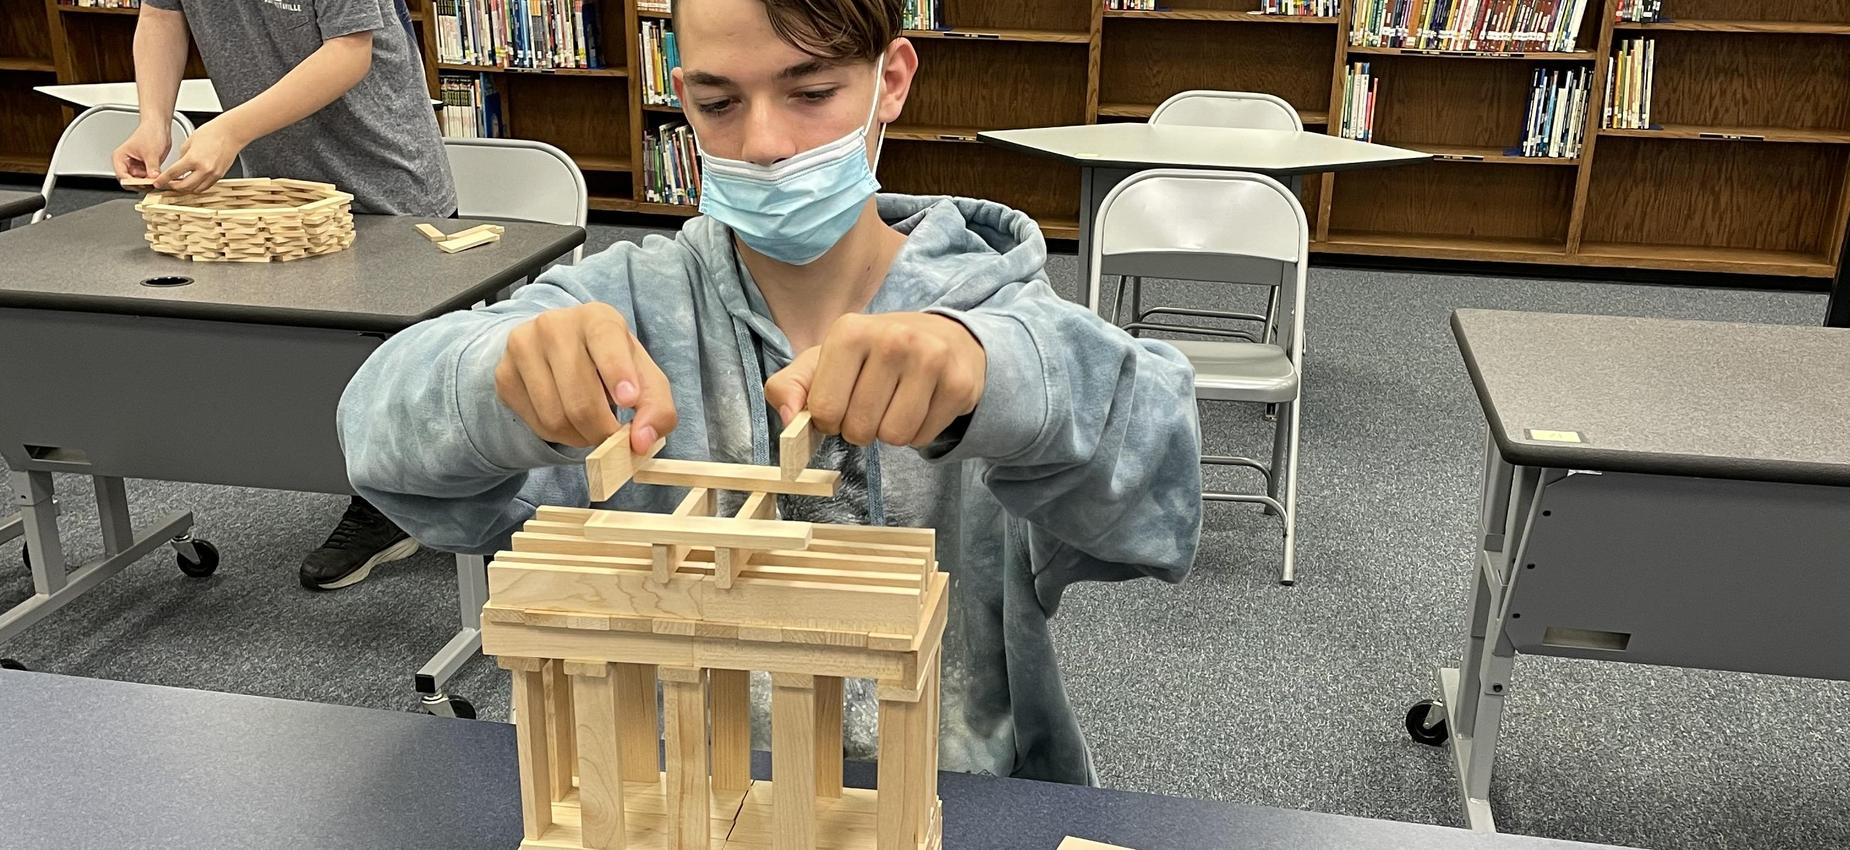 A student works with blocks in a library.